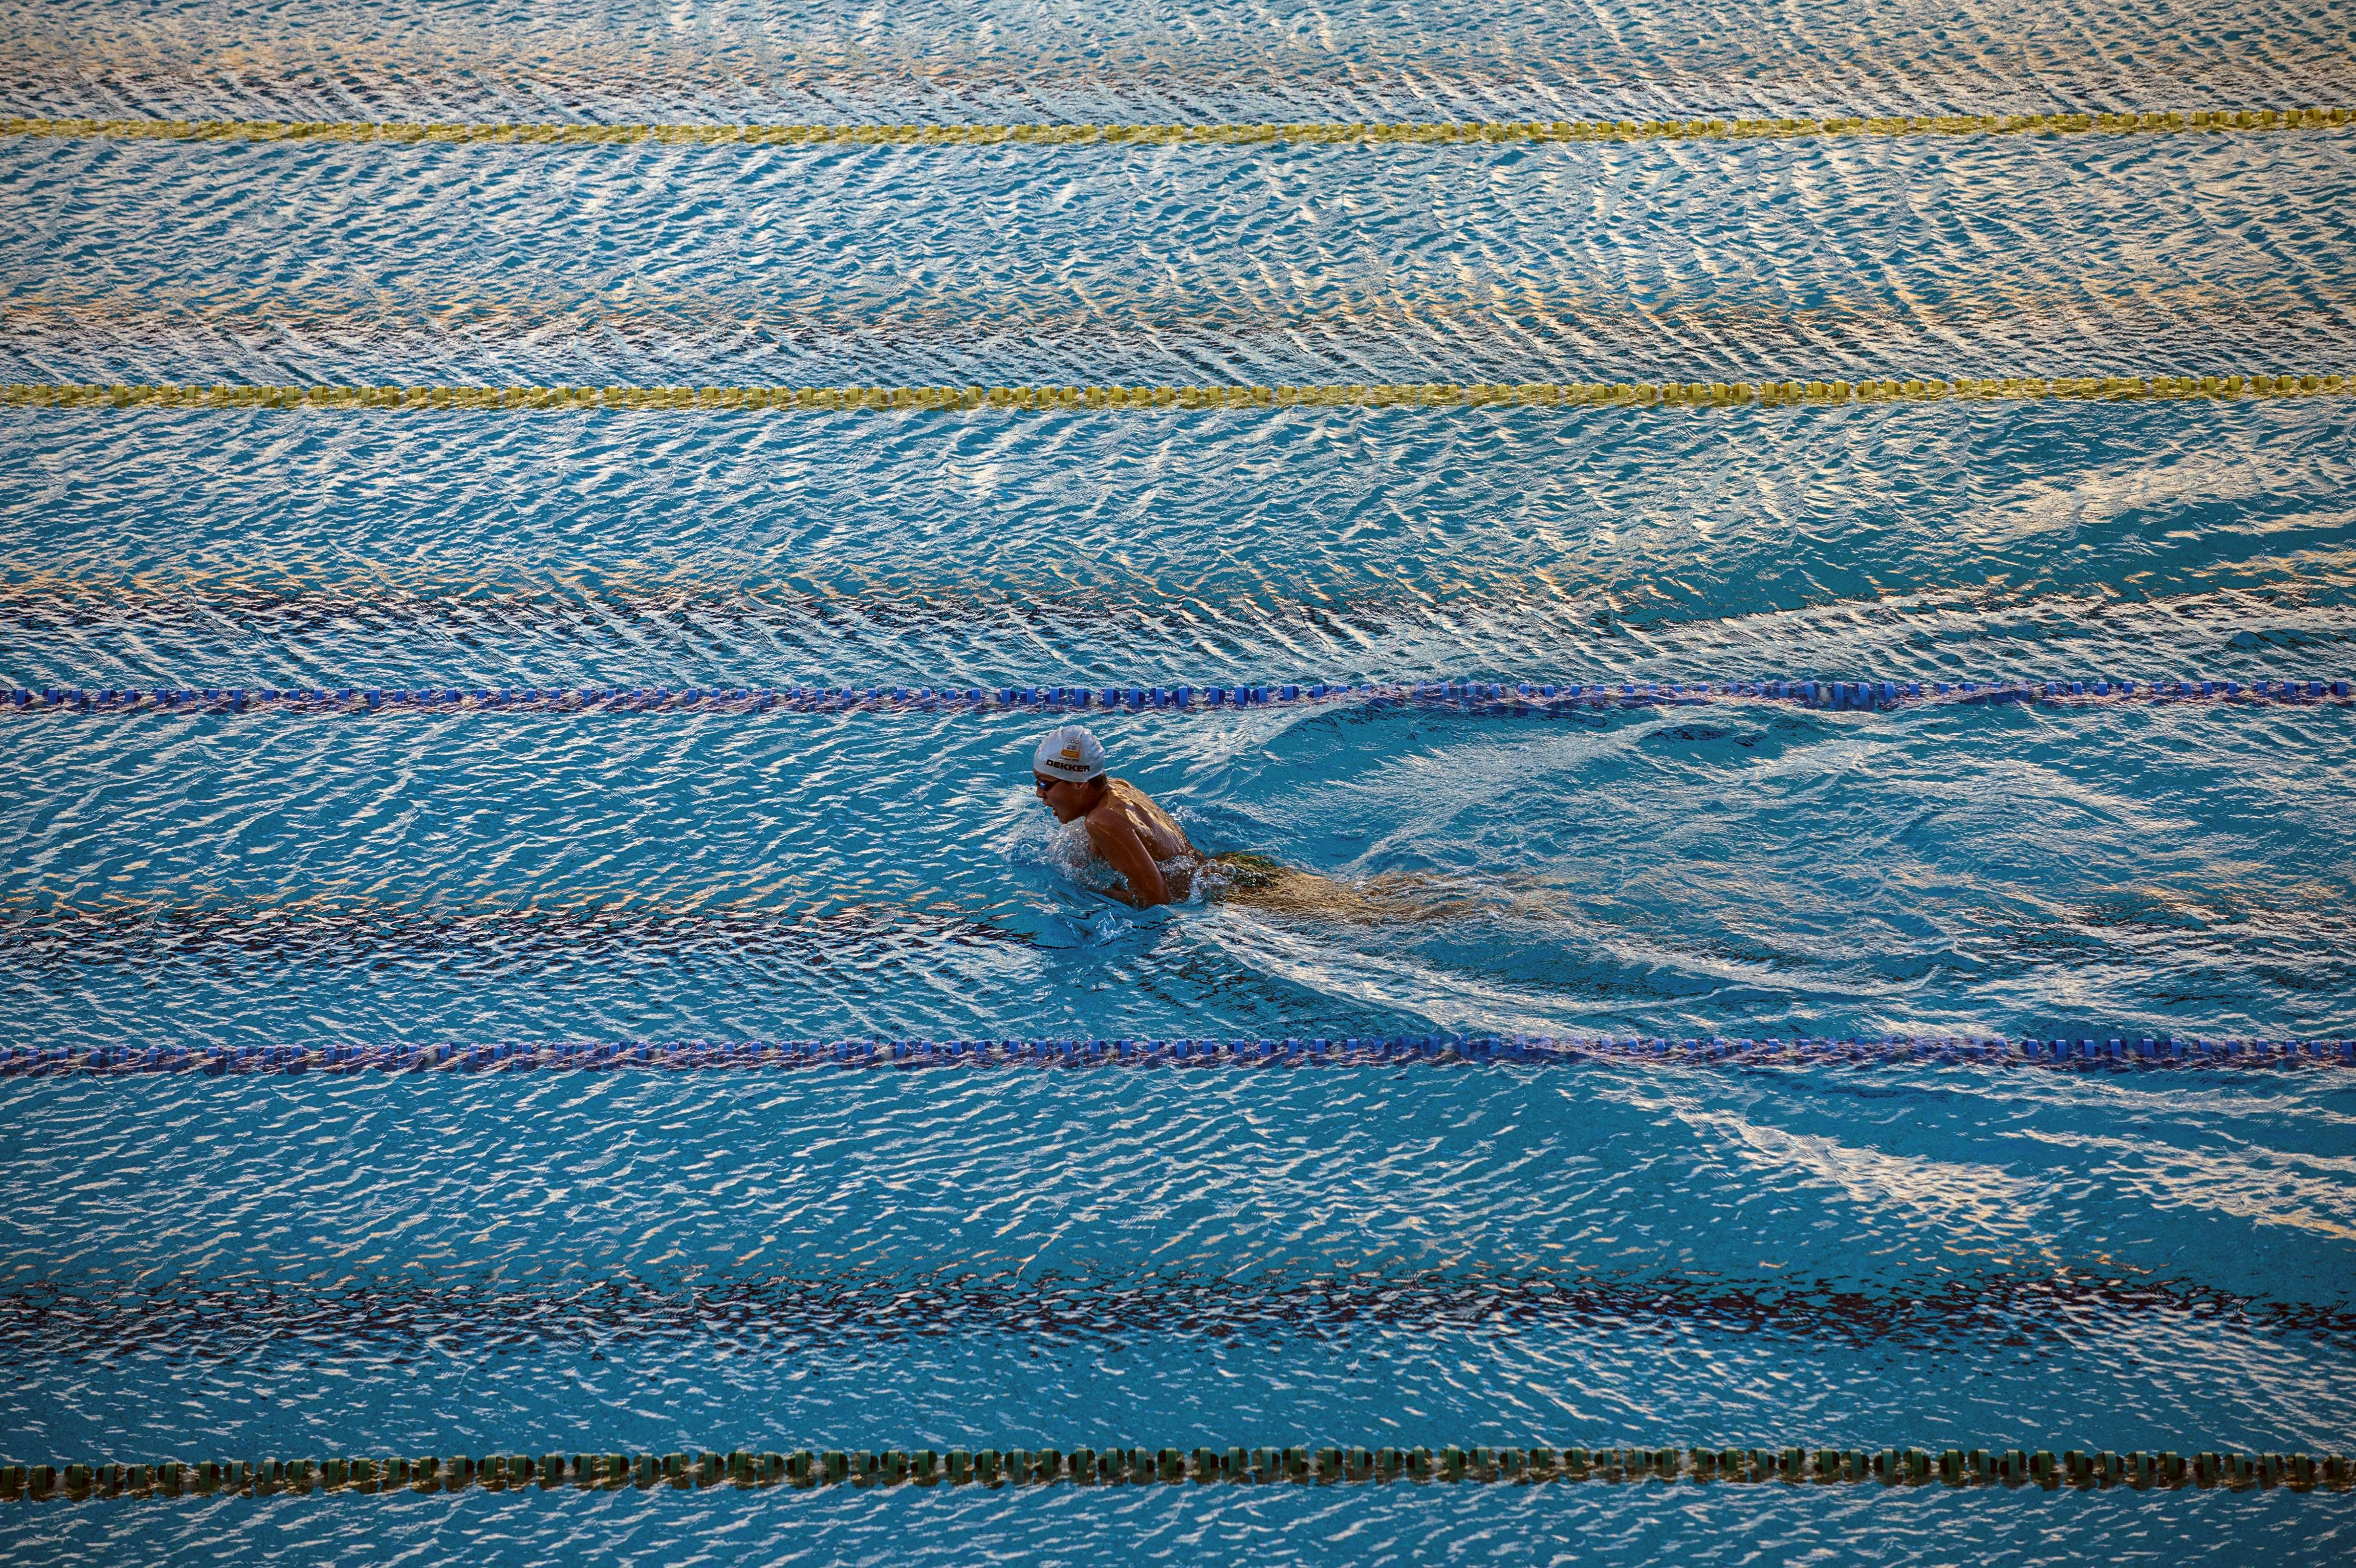 Aug. 6, 2014. A swimmer trains at the Maria Lenk Aquatic Center before renovation works to be Barra Aquatic center for the Rio 2016 Olympic and Paralympic games, in Barra de Tijuca, in Rio de Janeiro, Brazil.